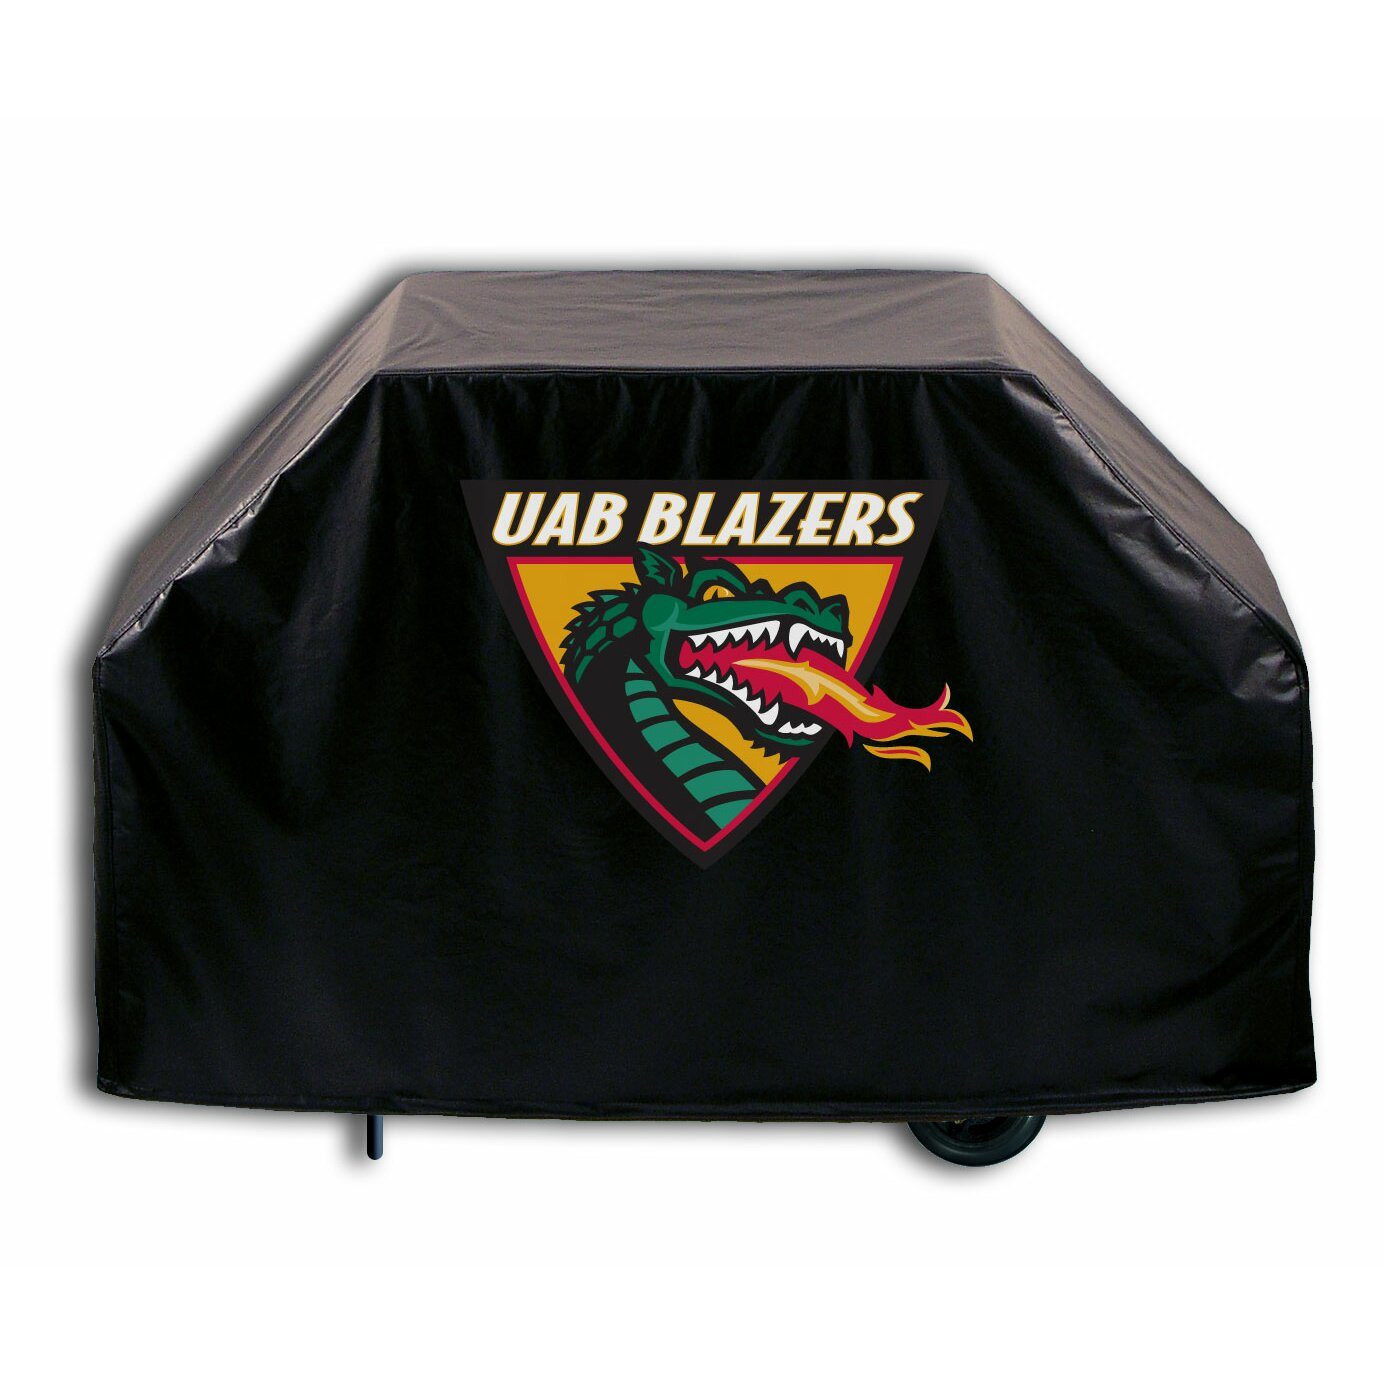 Holland Bar Stool NCAA Grill Cover amp Reviews Wayfair : Holland Bar Stool NCAA Grill Cover GCBKUABBlazer from www.wayfair.com size 1384 x 1384 jpeg 258kB